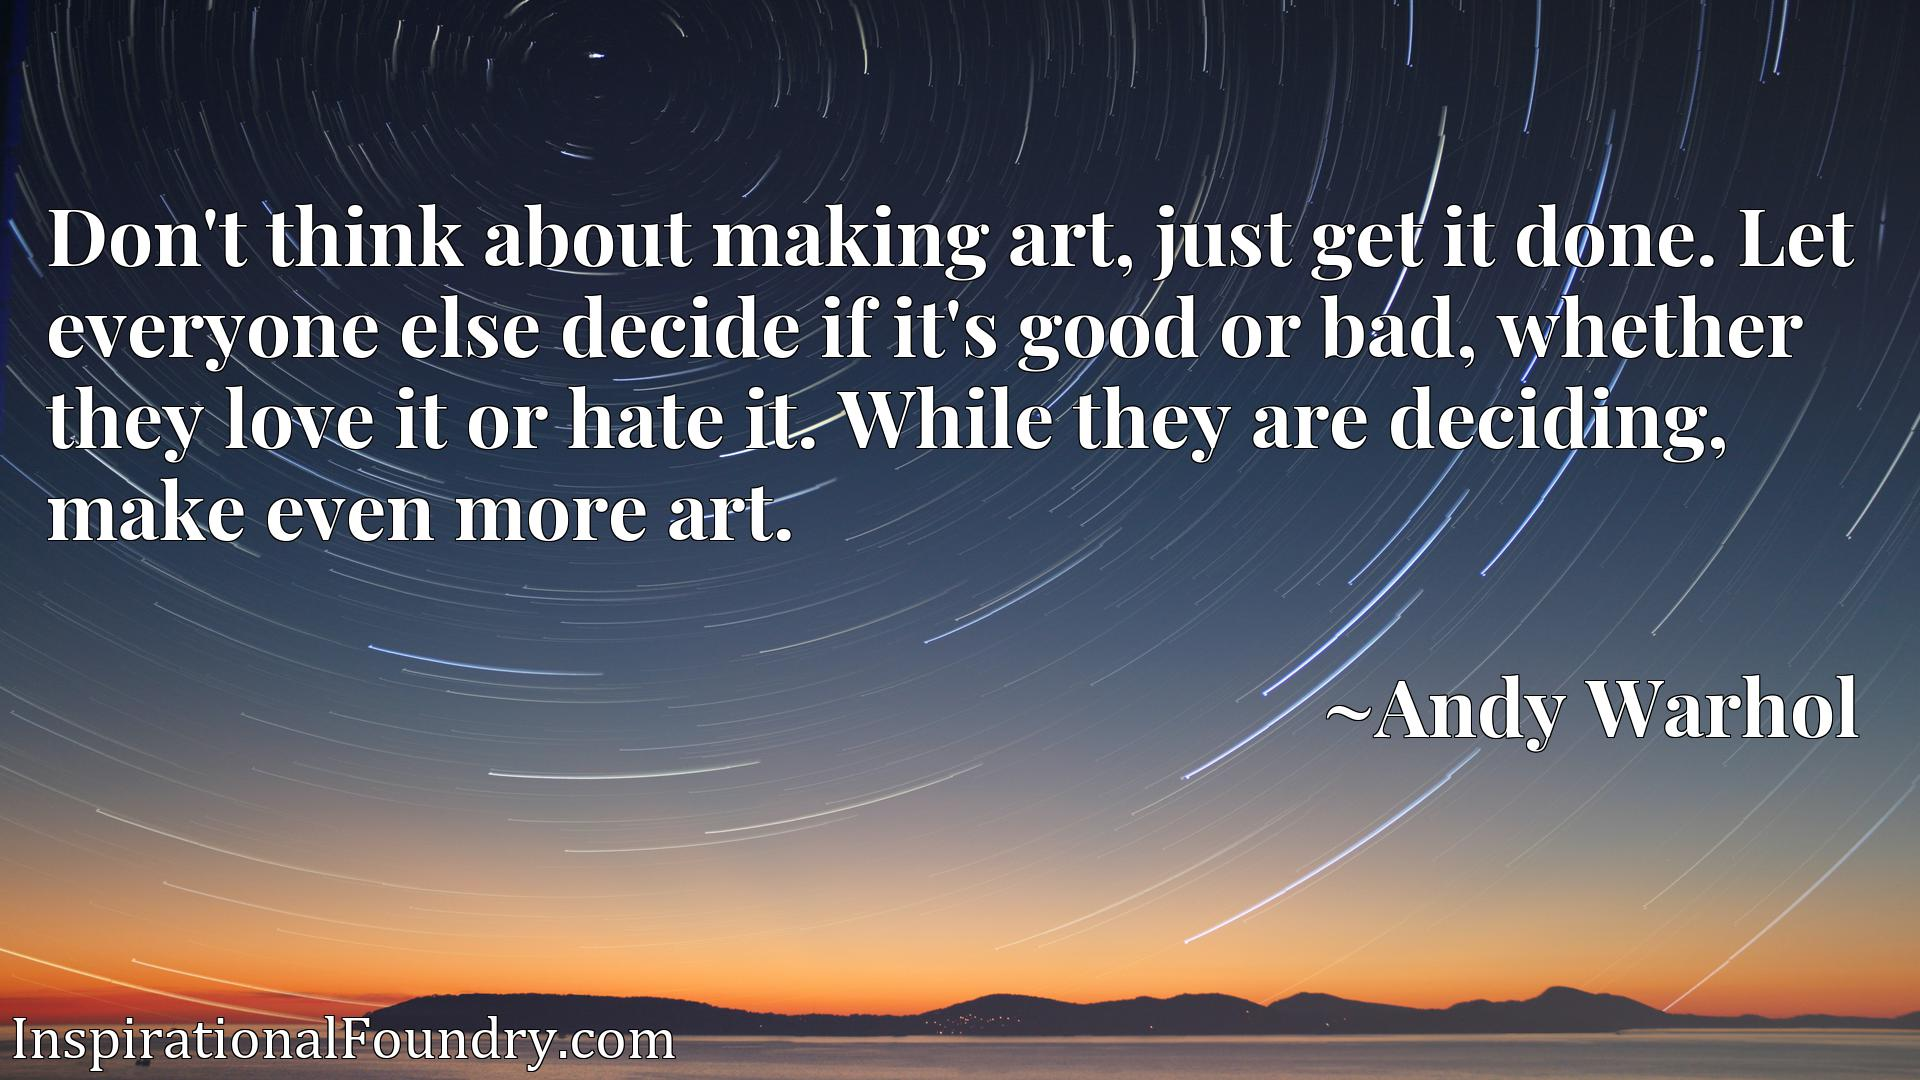 Don't think about making art, just get it done. Let everyone else decide if it's good or bad, whether they love it or hate it. While they are deciding, make even more art.